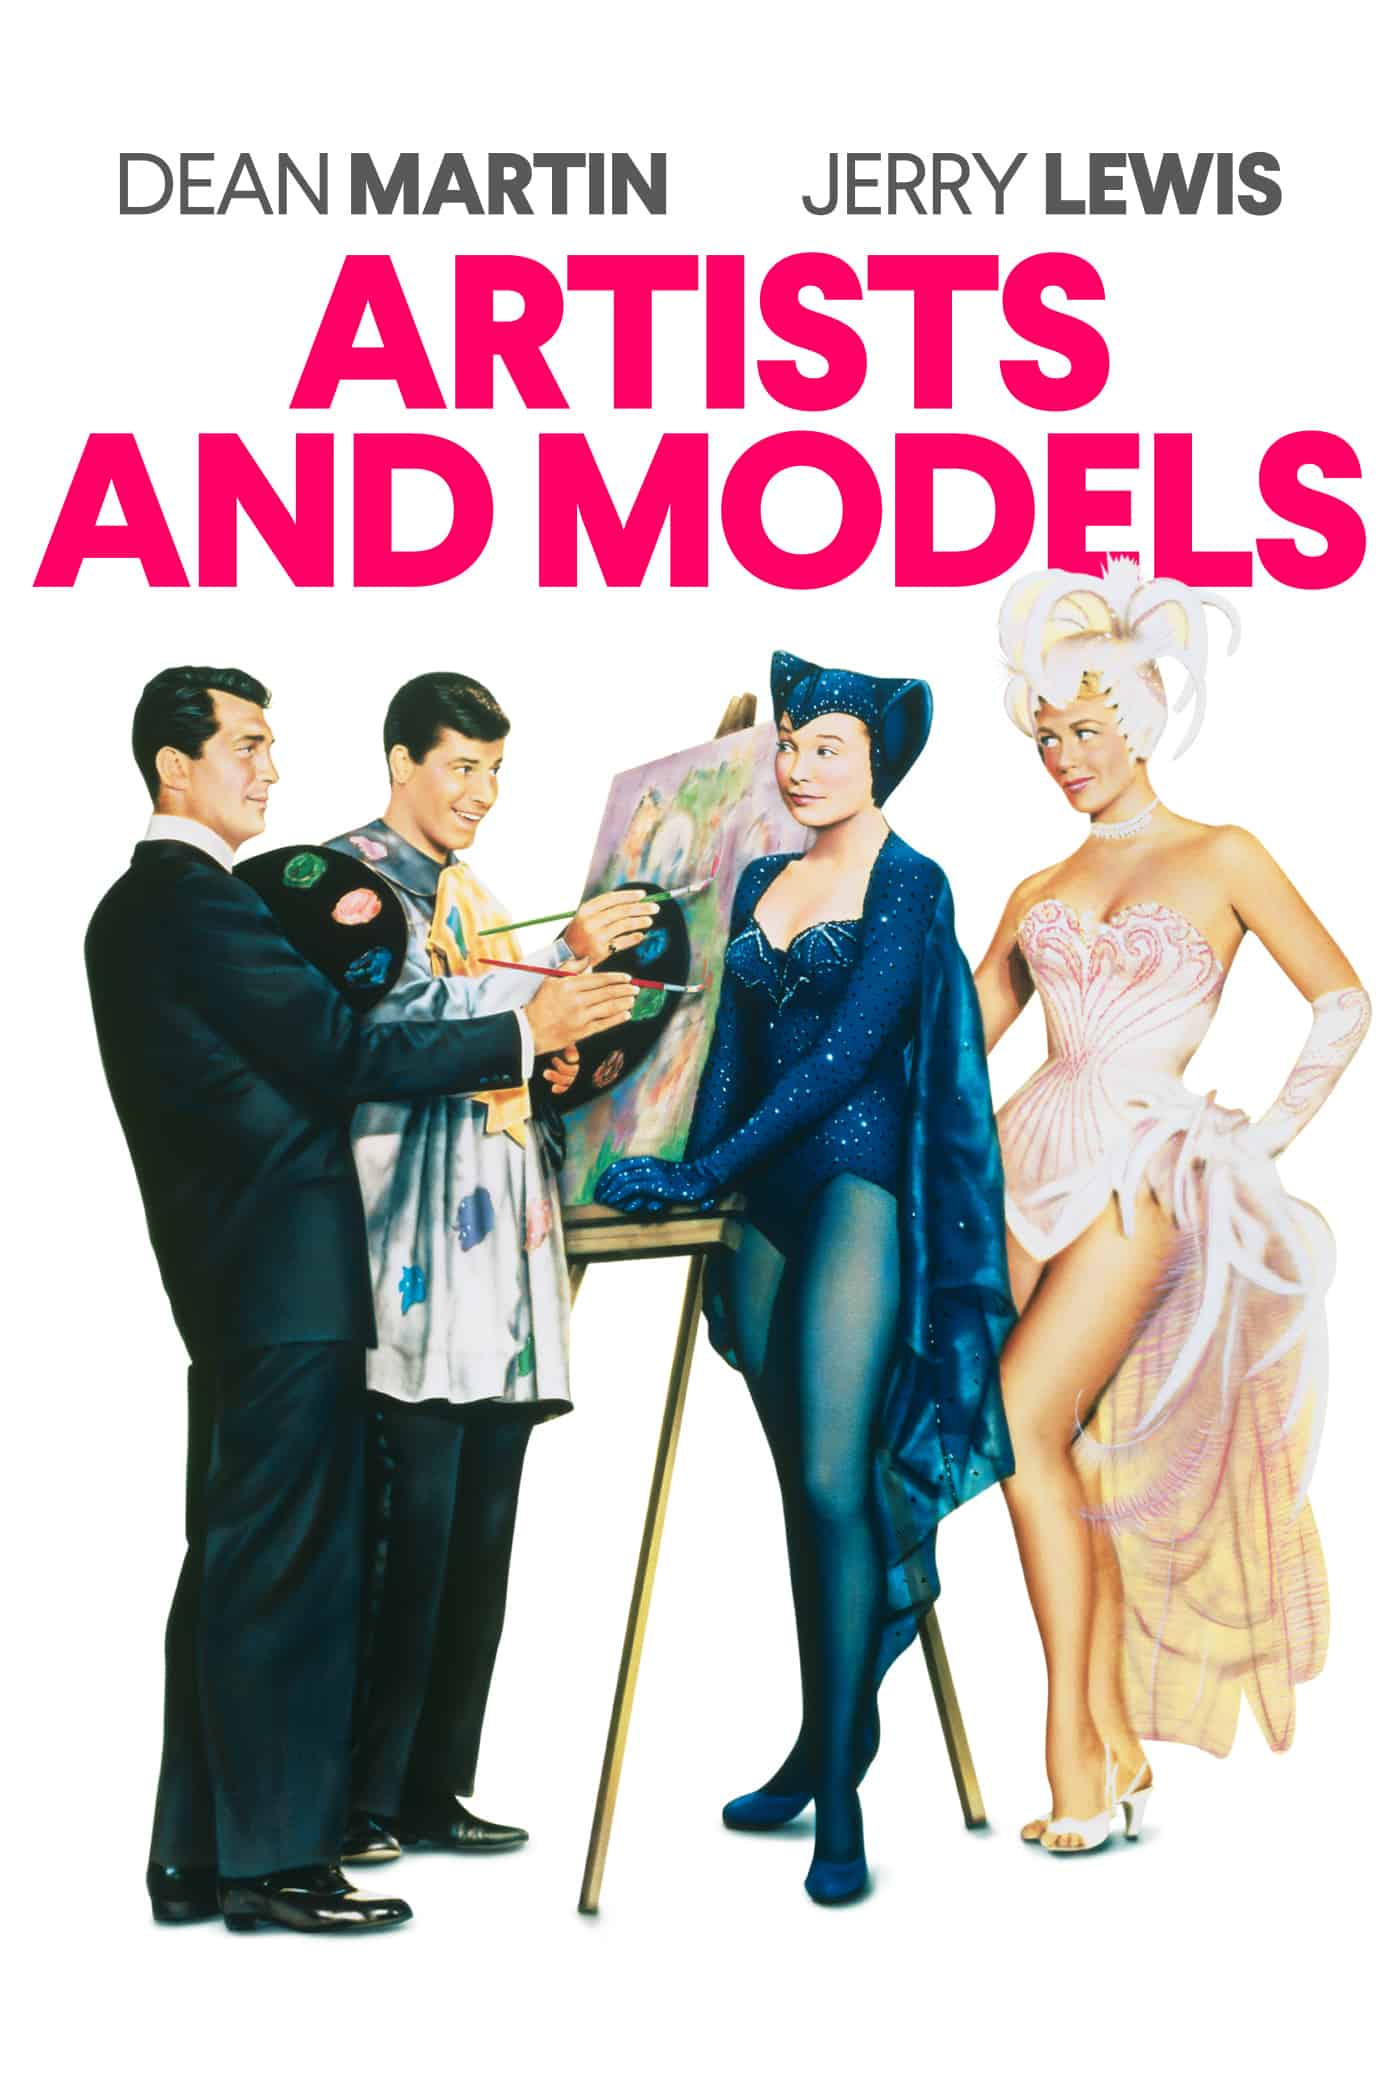 Artists and Models 65th Anniversary [Historically Important Movie review] 2